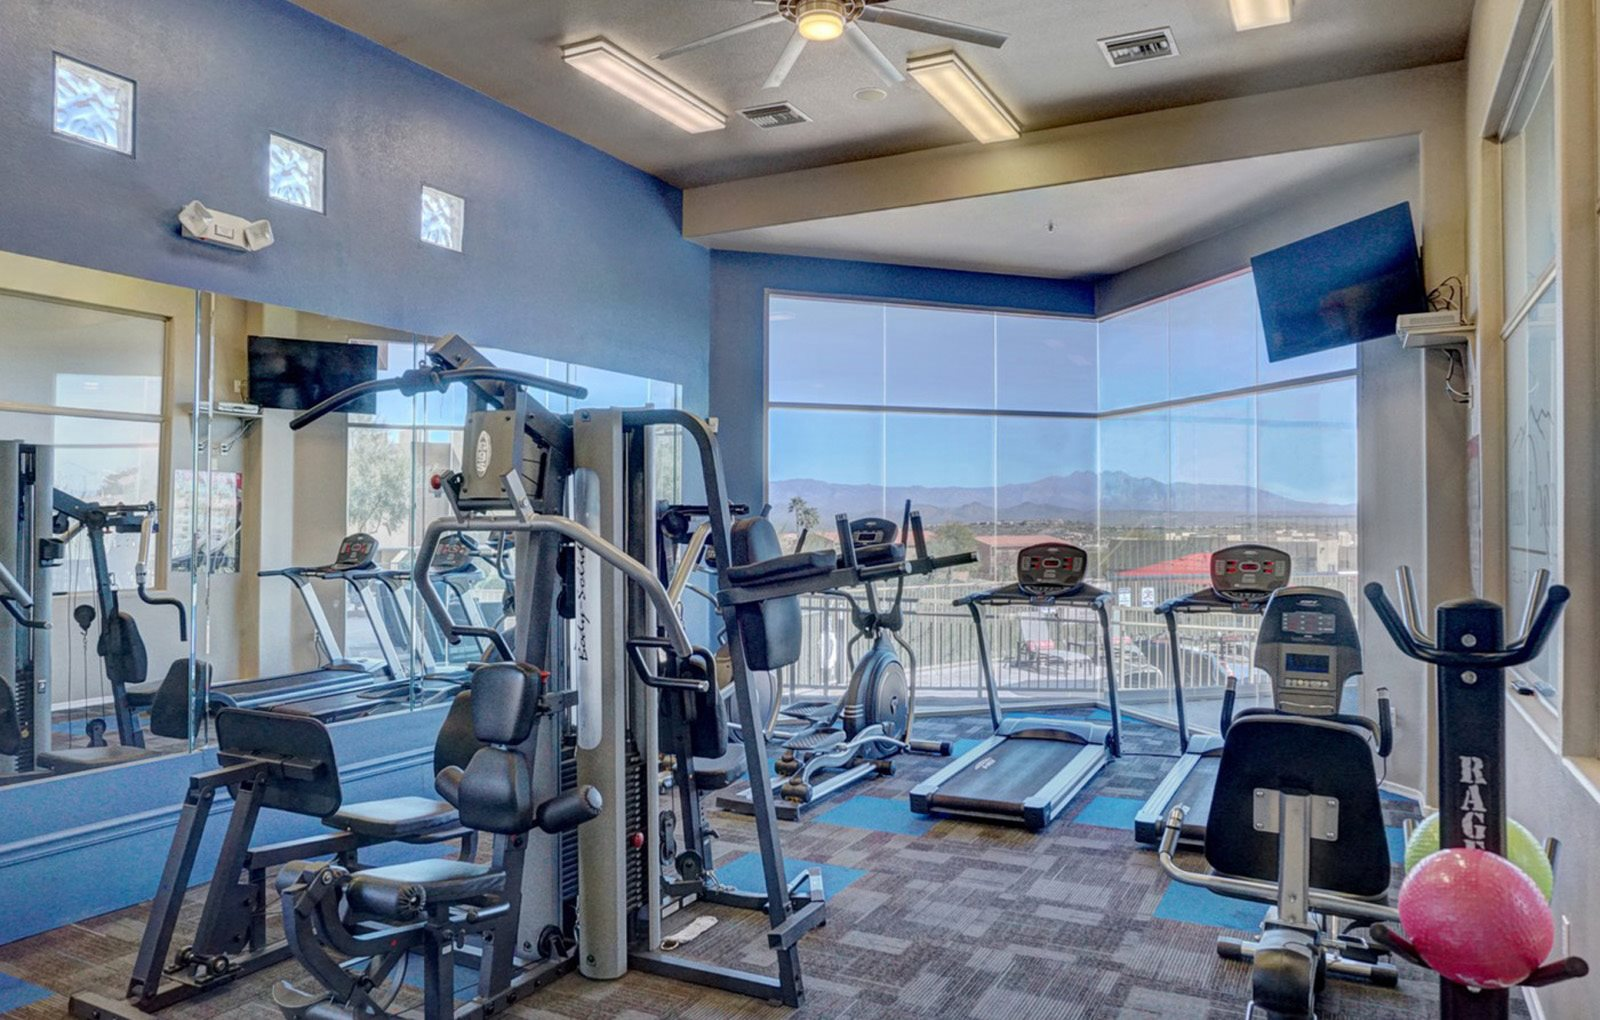 Community fitness center at Ridge View Apartments in Fountain Hills, AZ